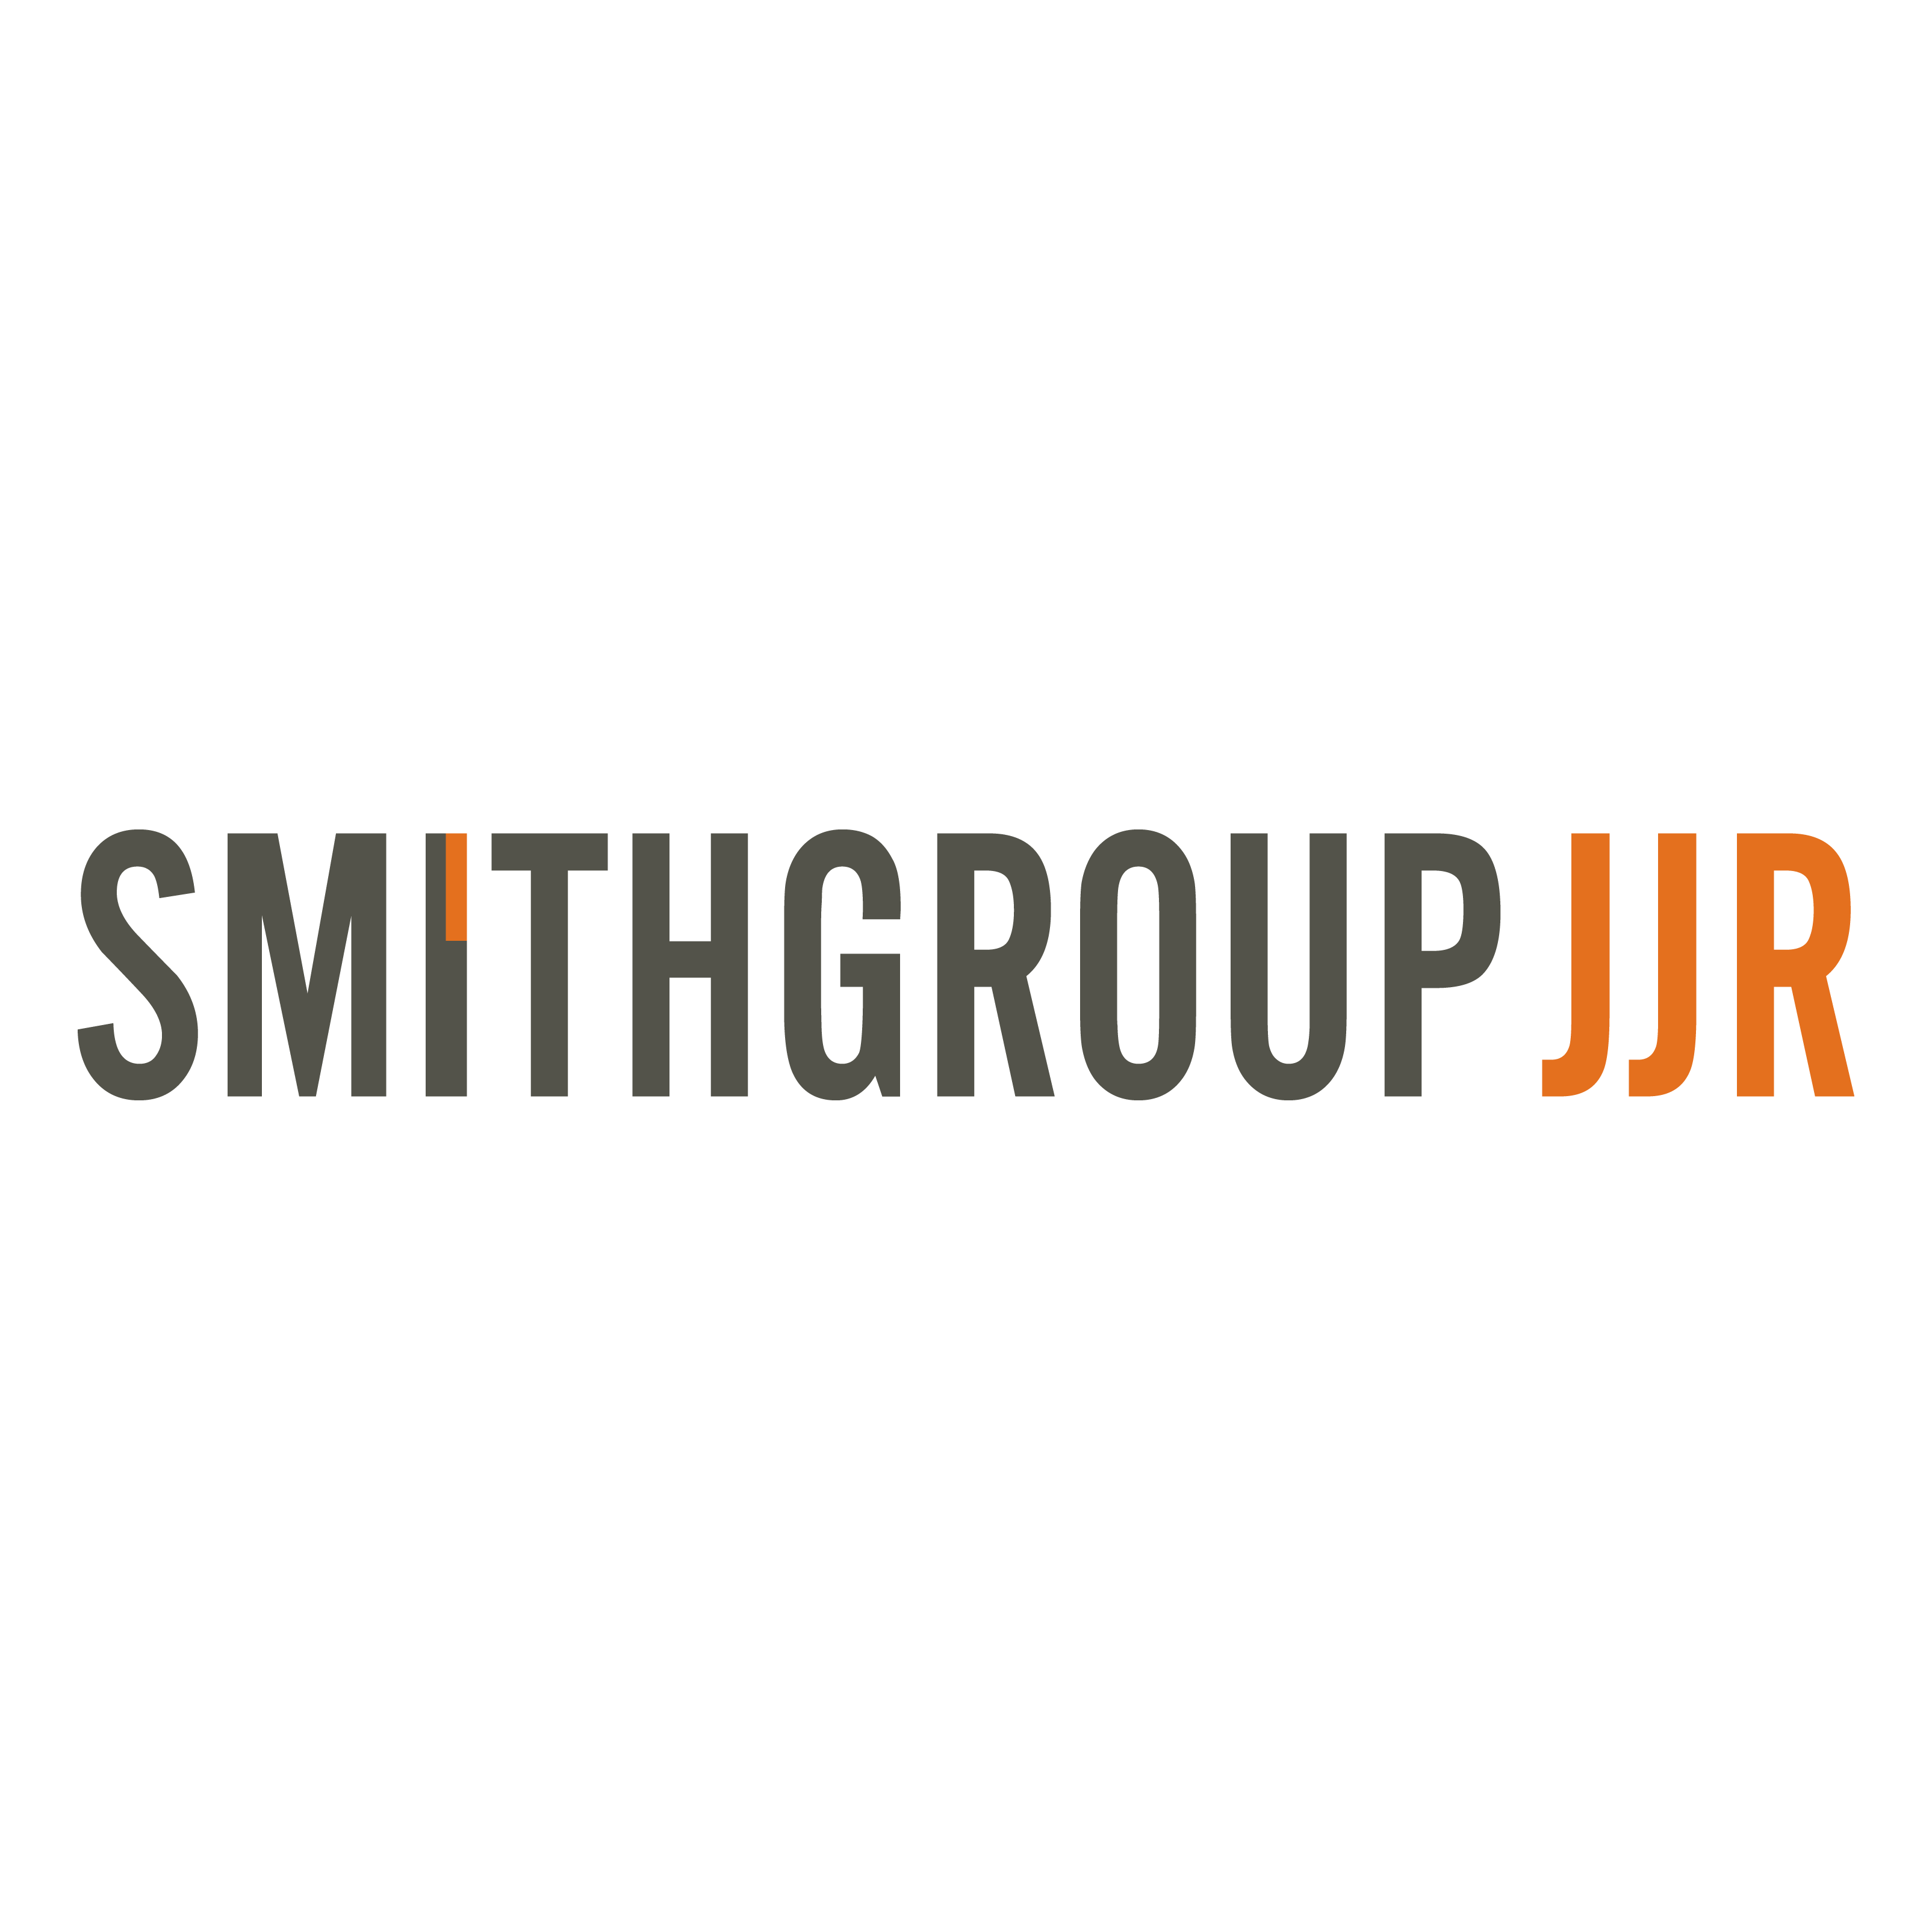 smithgroupjjr copy